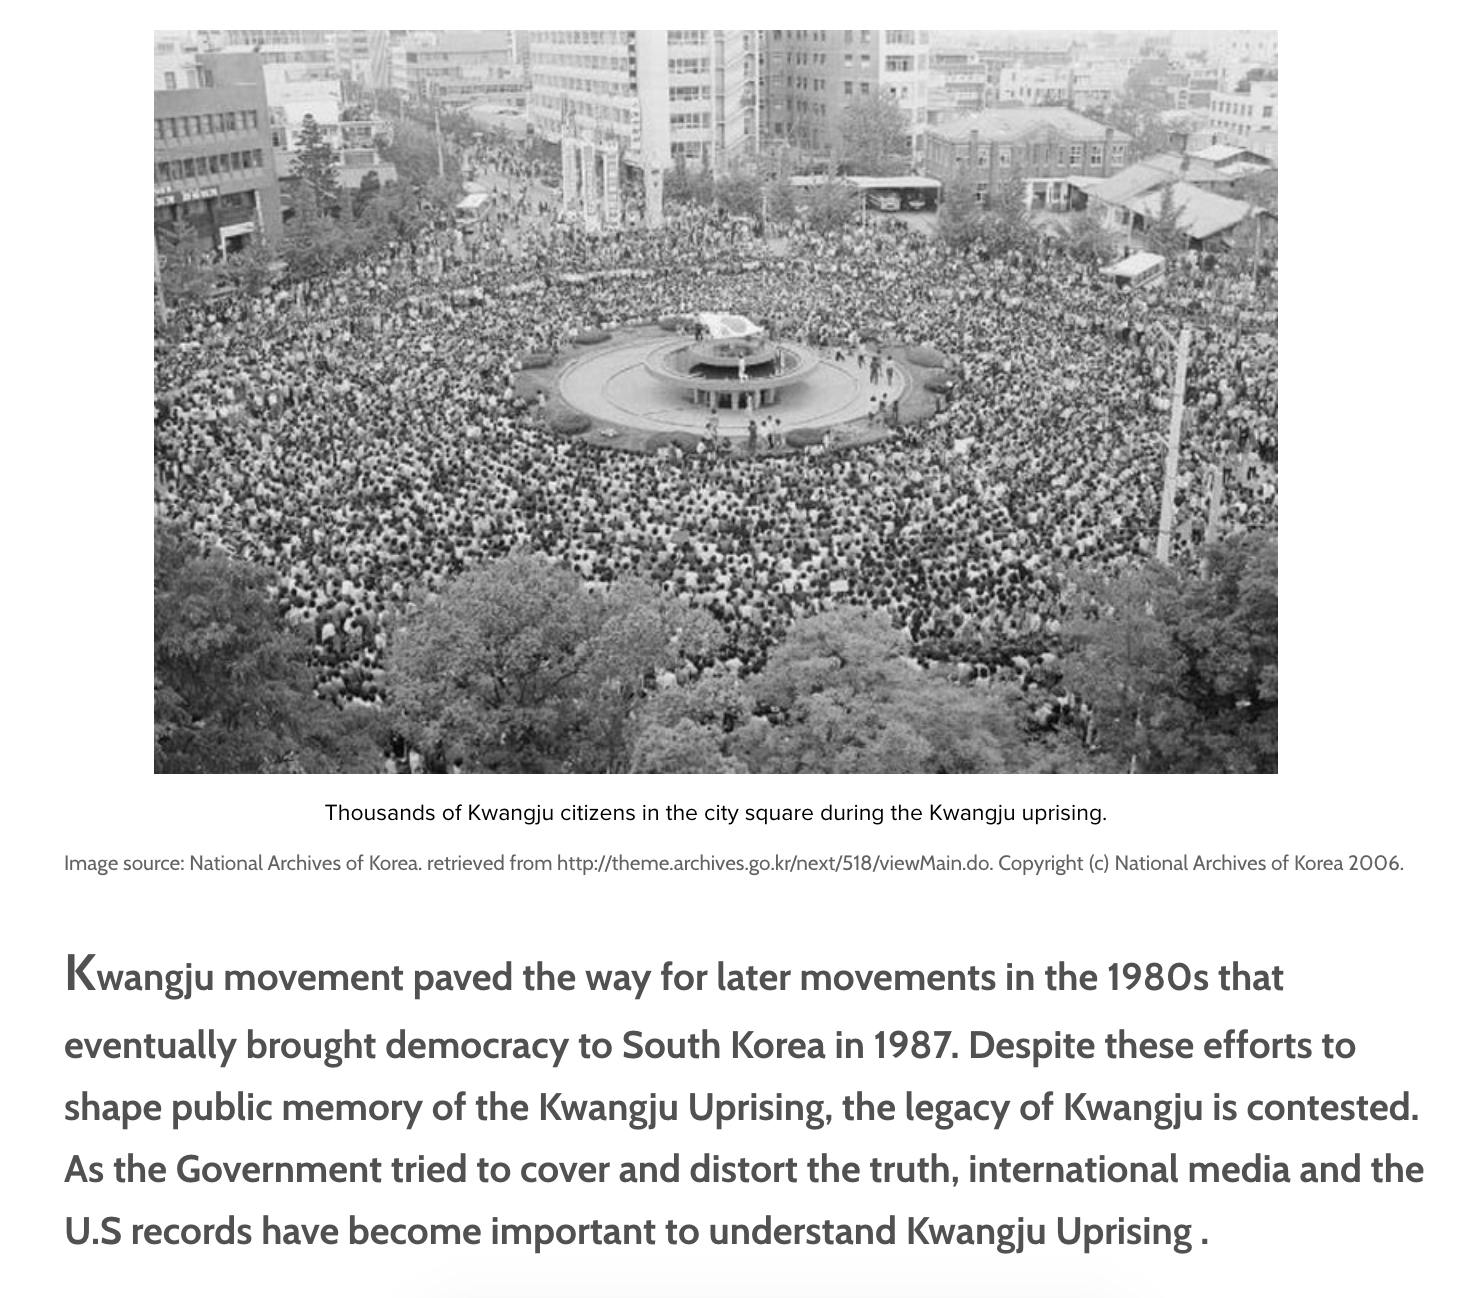 Thousands of Kwangju citizens in the city square during the Kwangju uprising